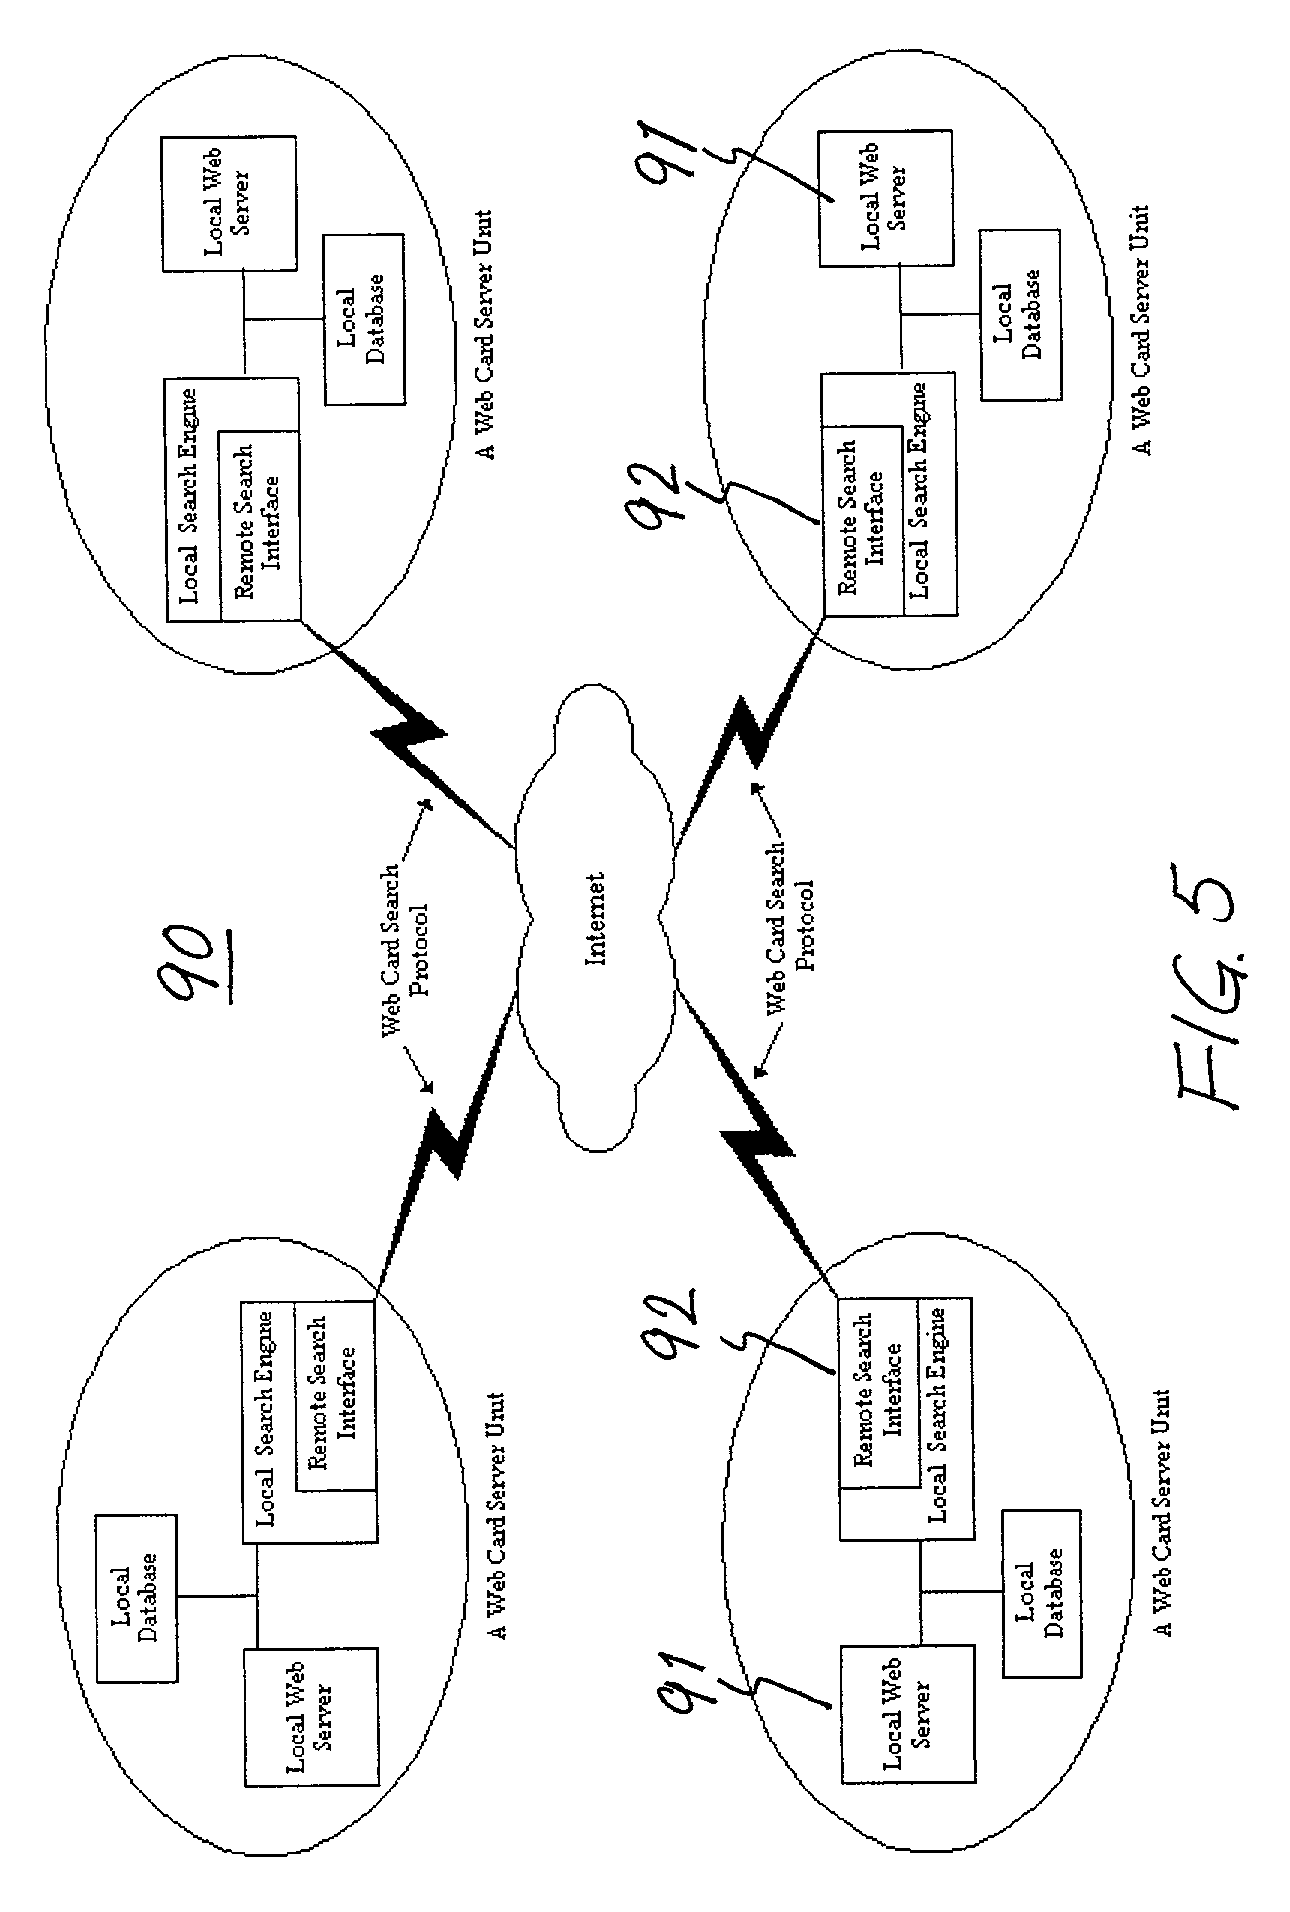 patent us7512666 global network of web card systems and method My IP Adrees patent drawing